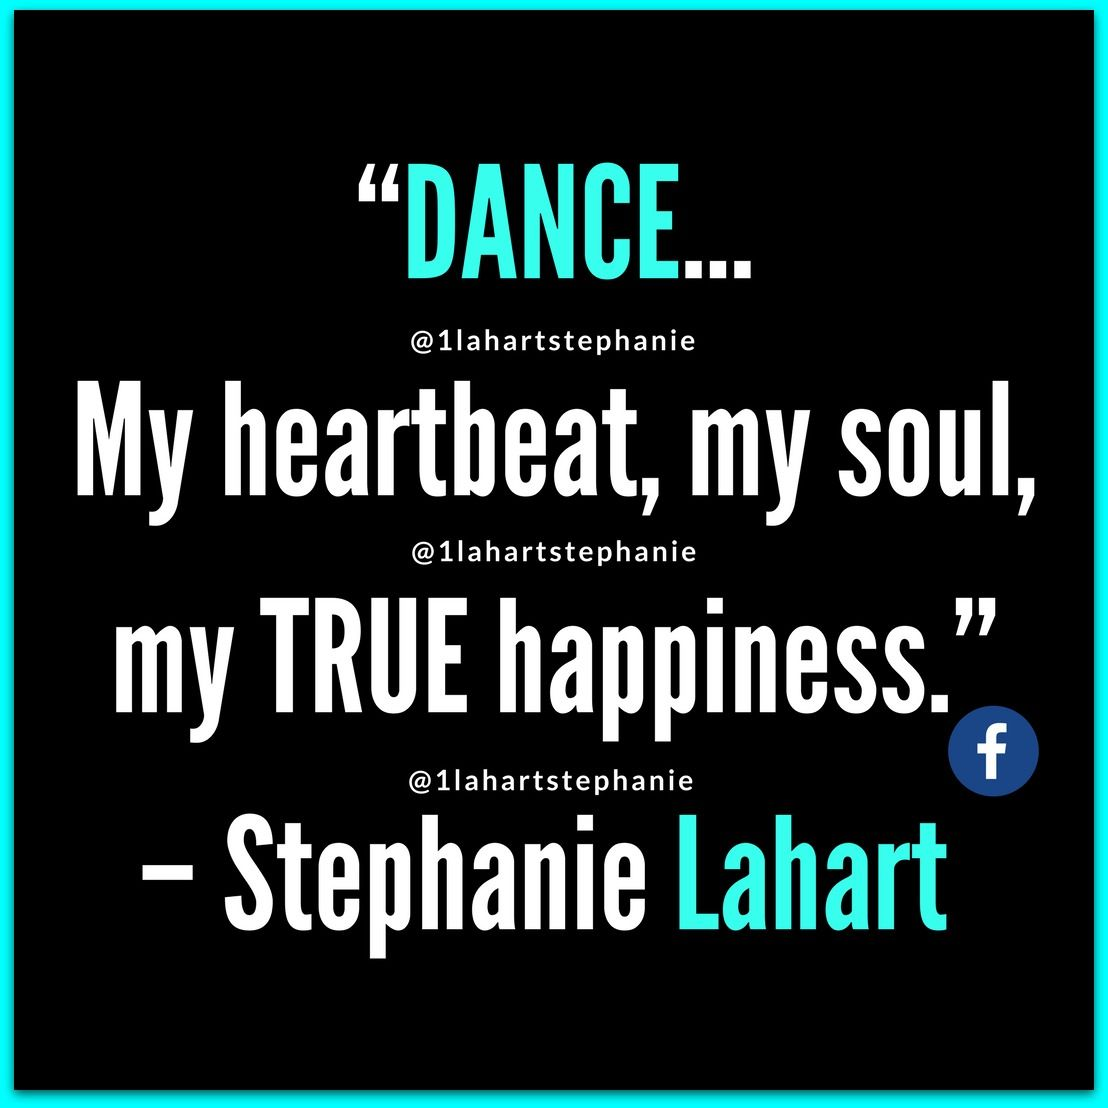 840b1dc5e Dance And Dancer T-shirts By Lahart. Stephanie Lahart Dance Quotes.